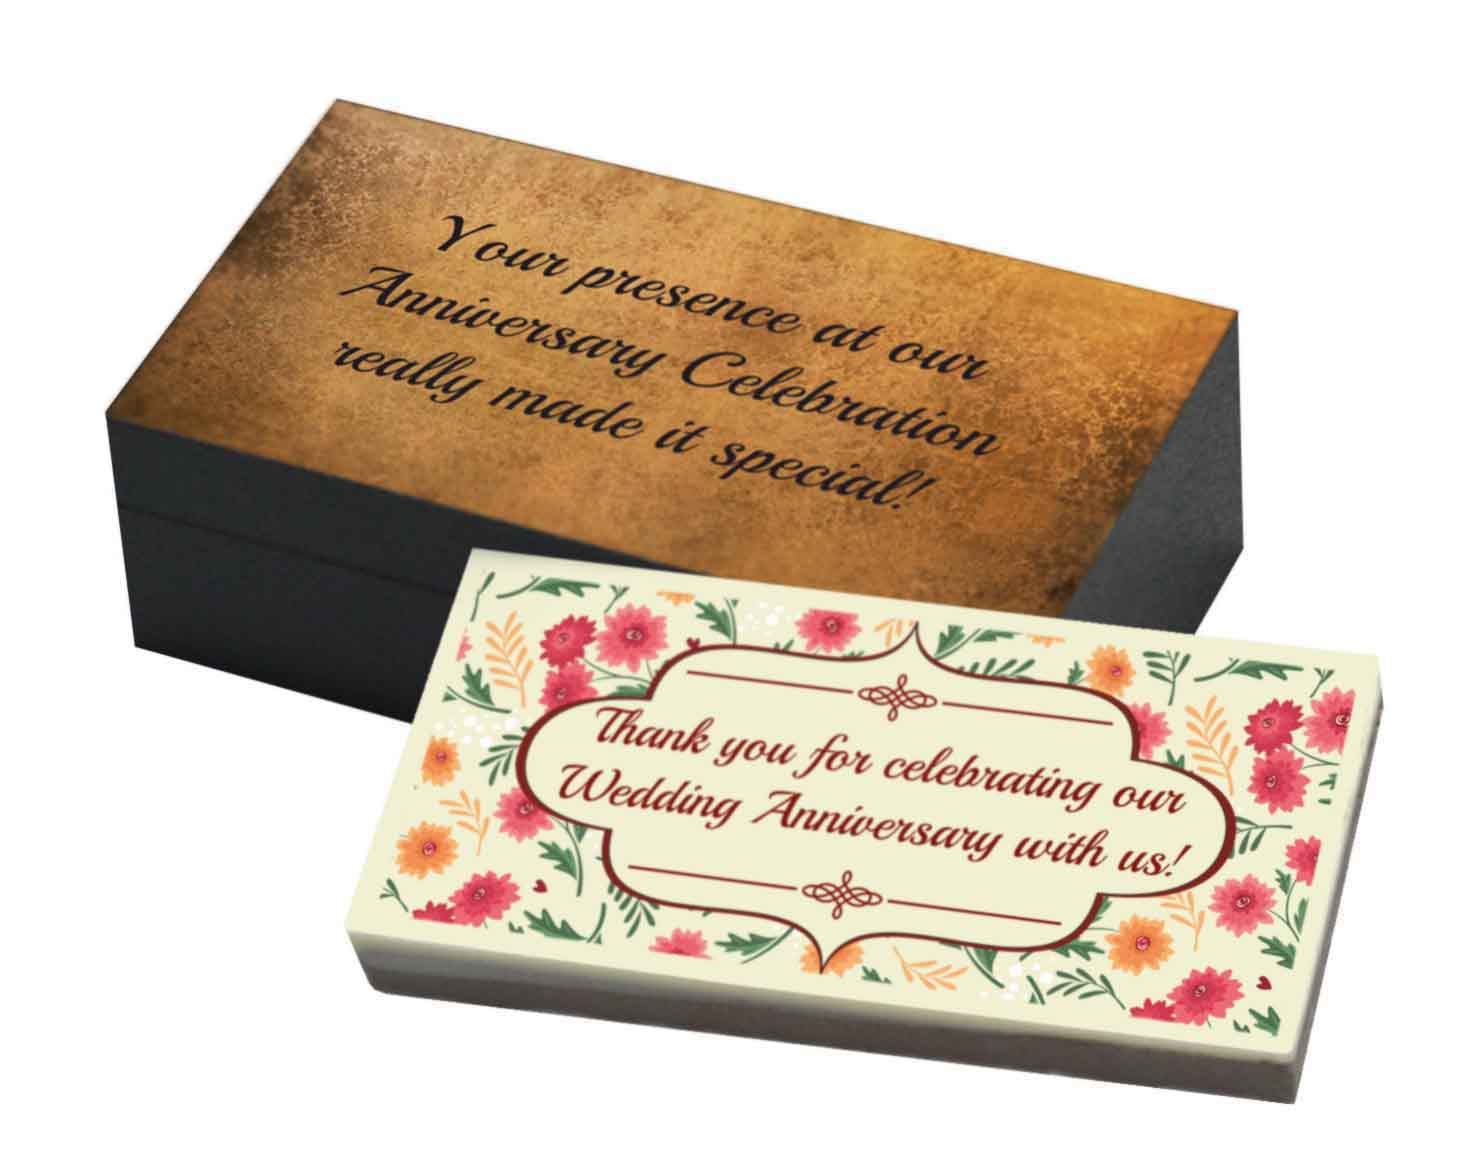 Return Gifts For 25th Wedding Anniversary: Customized Chocolate Bar For Wedding Anniversary Return